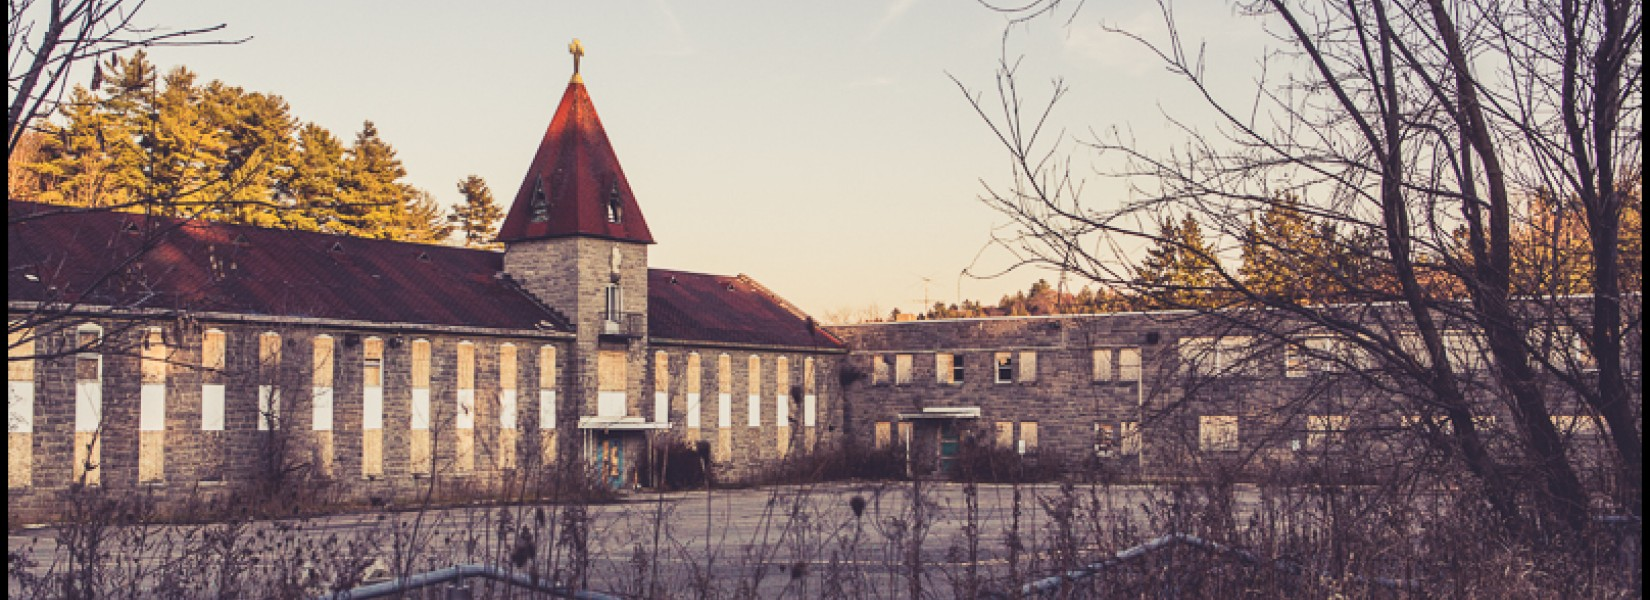 The Mascouche seigniorial mansion - Photos by Pierre Bourgault